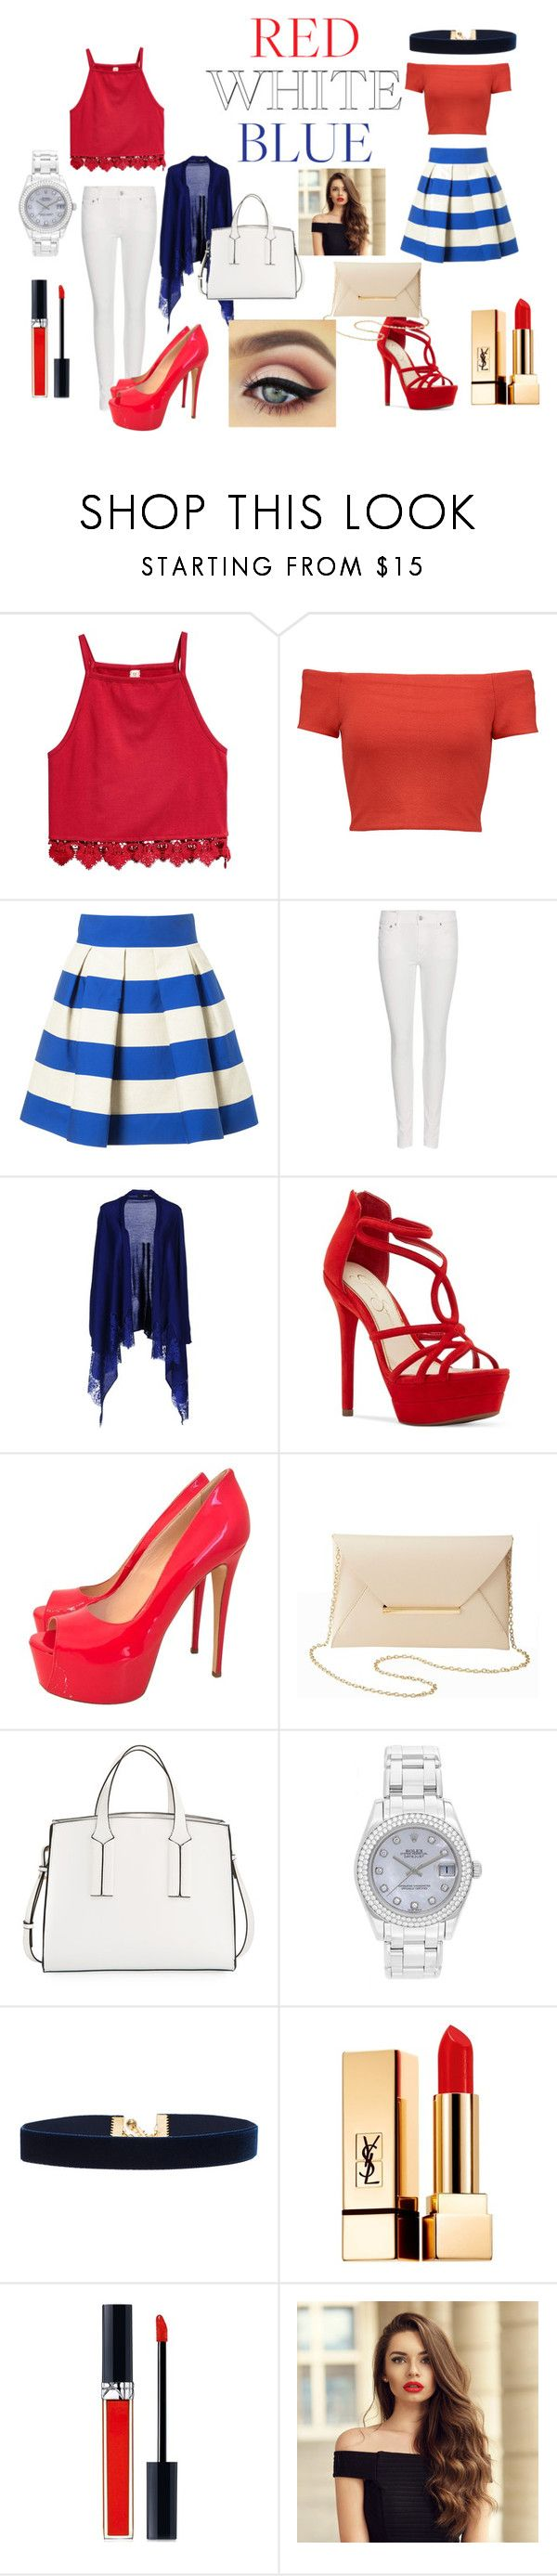 """casual look"" by hithaishi on Polyvore featuring Alice + Olivia, Delpozo, Polo Ralph Lauren, LIU•JO, Jessica Simpson, Gianmarco Lorenzi, Charlotte Russe, French Connection, Rolex and Vanessa Mooney"